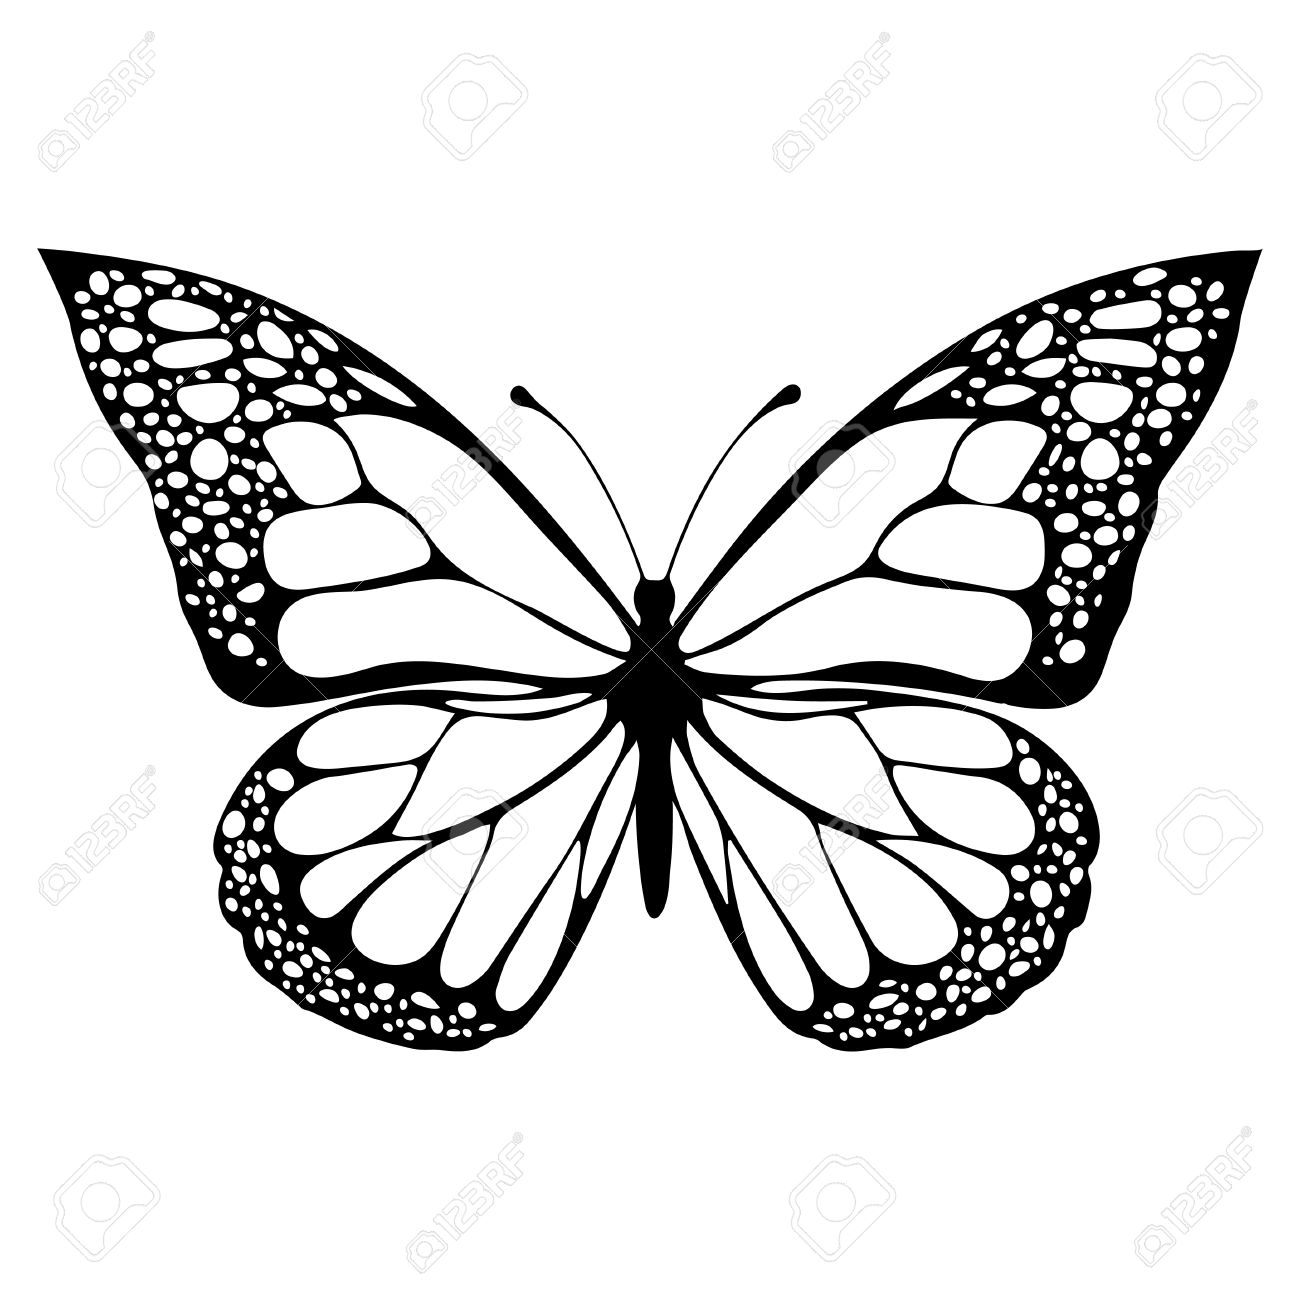 a2c6a99a7c9a4 Vector illustration. Butterfly, monochrome, coloring book, black and white  illustration, hand-drawing,